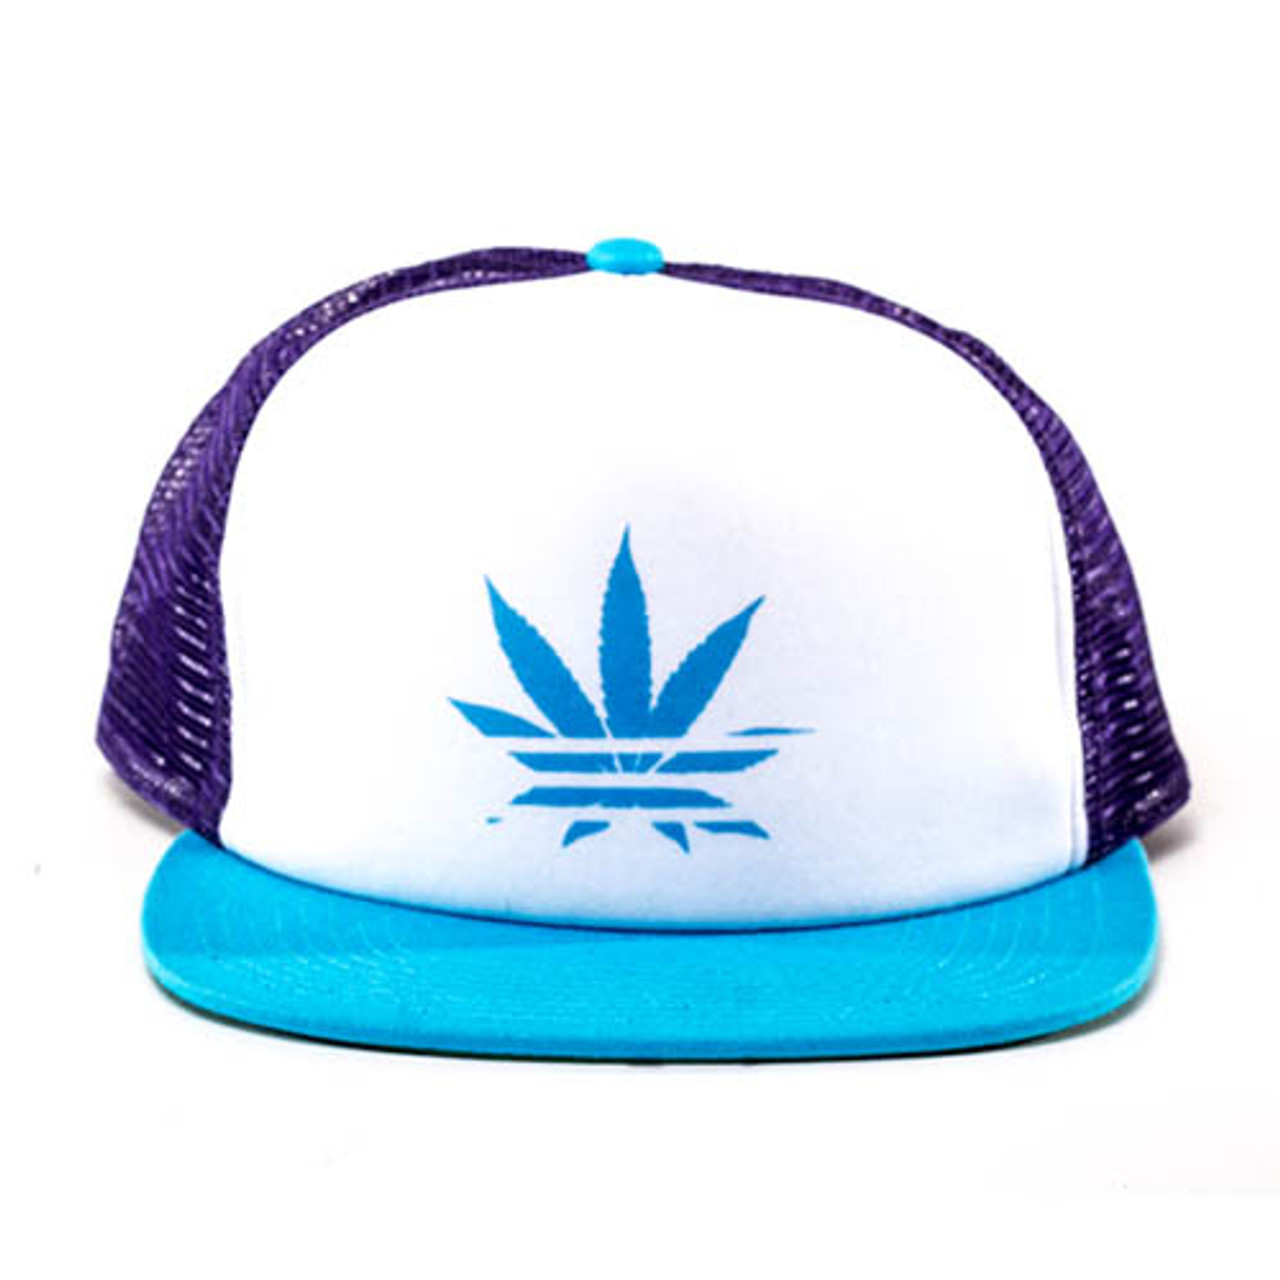 No Bad Ideas - Snapback Trucker Cap - Kali (White/Blue Leaf)